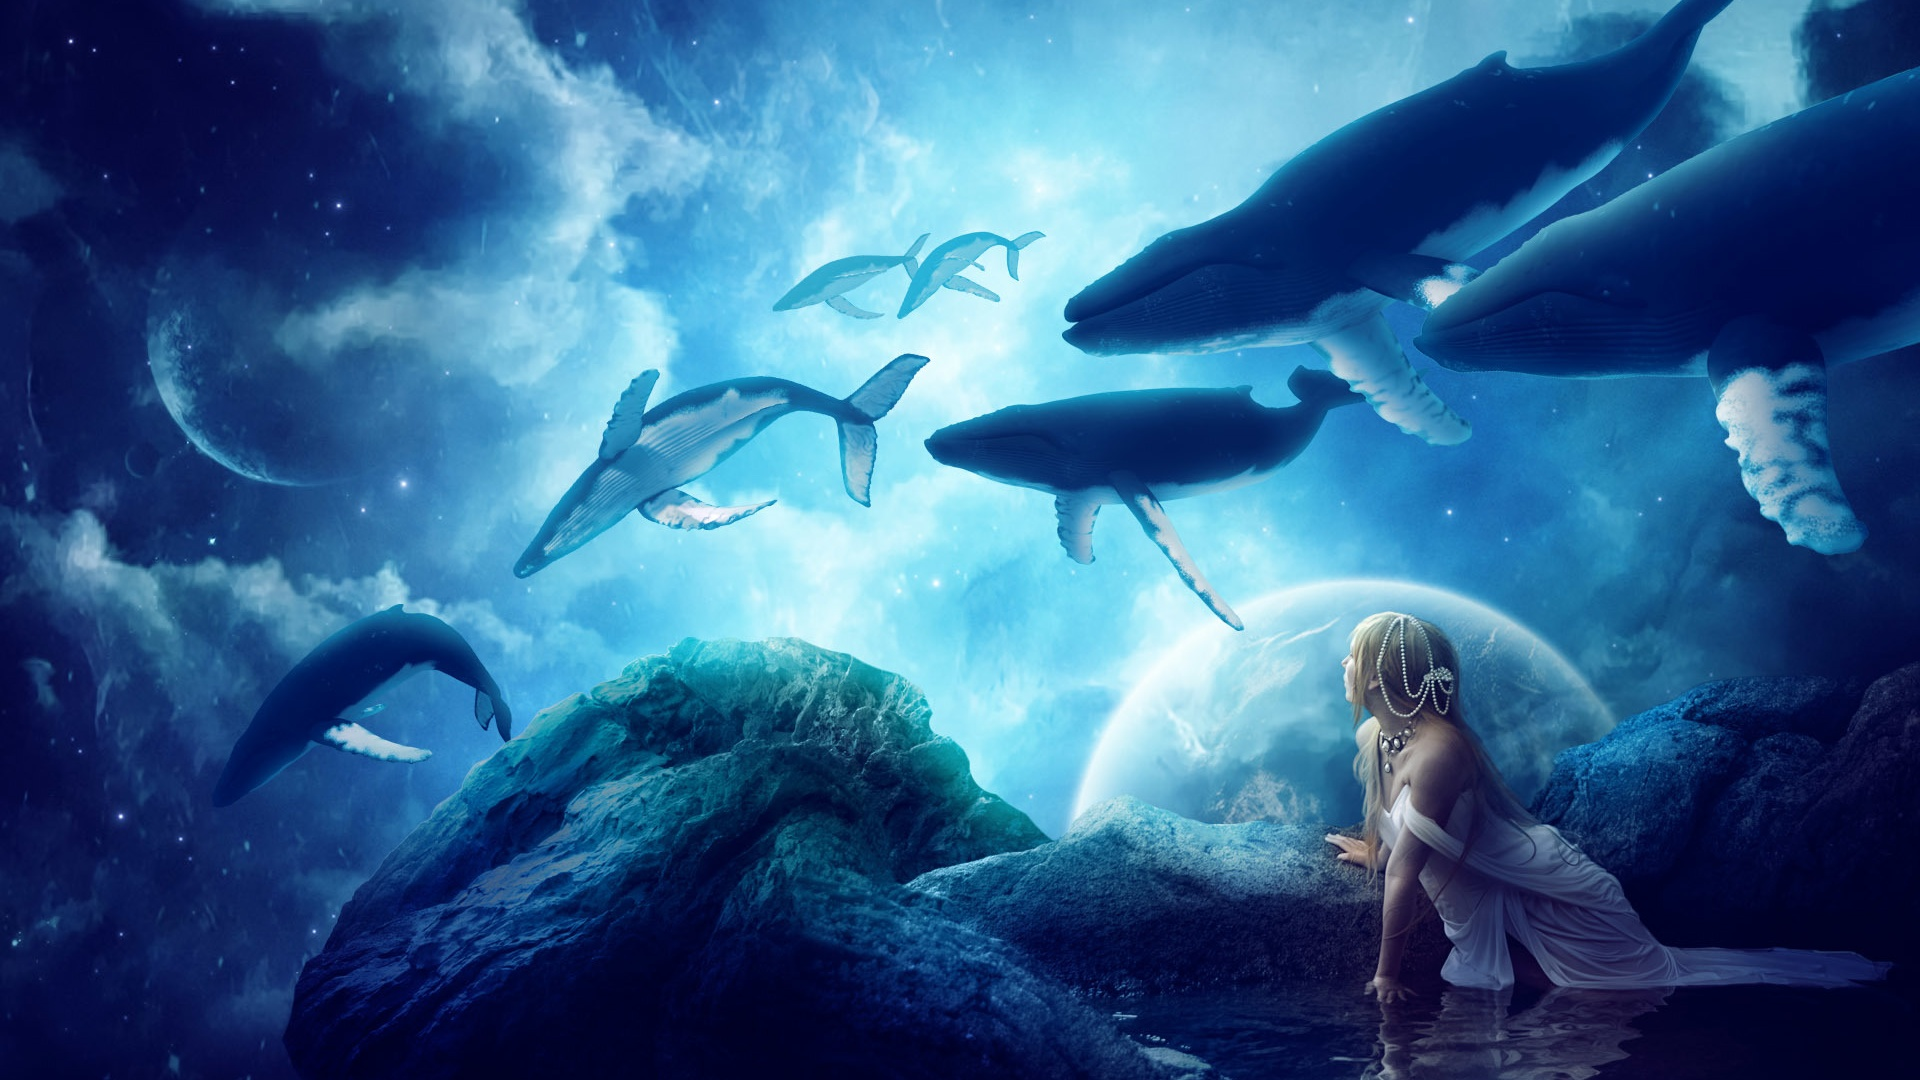 Download-Dream-Fantasy-Girls-Whales-section-Resolution-1920x1080-wallpaper-wp3804814